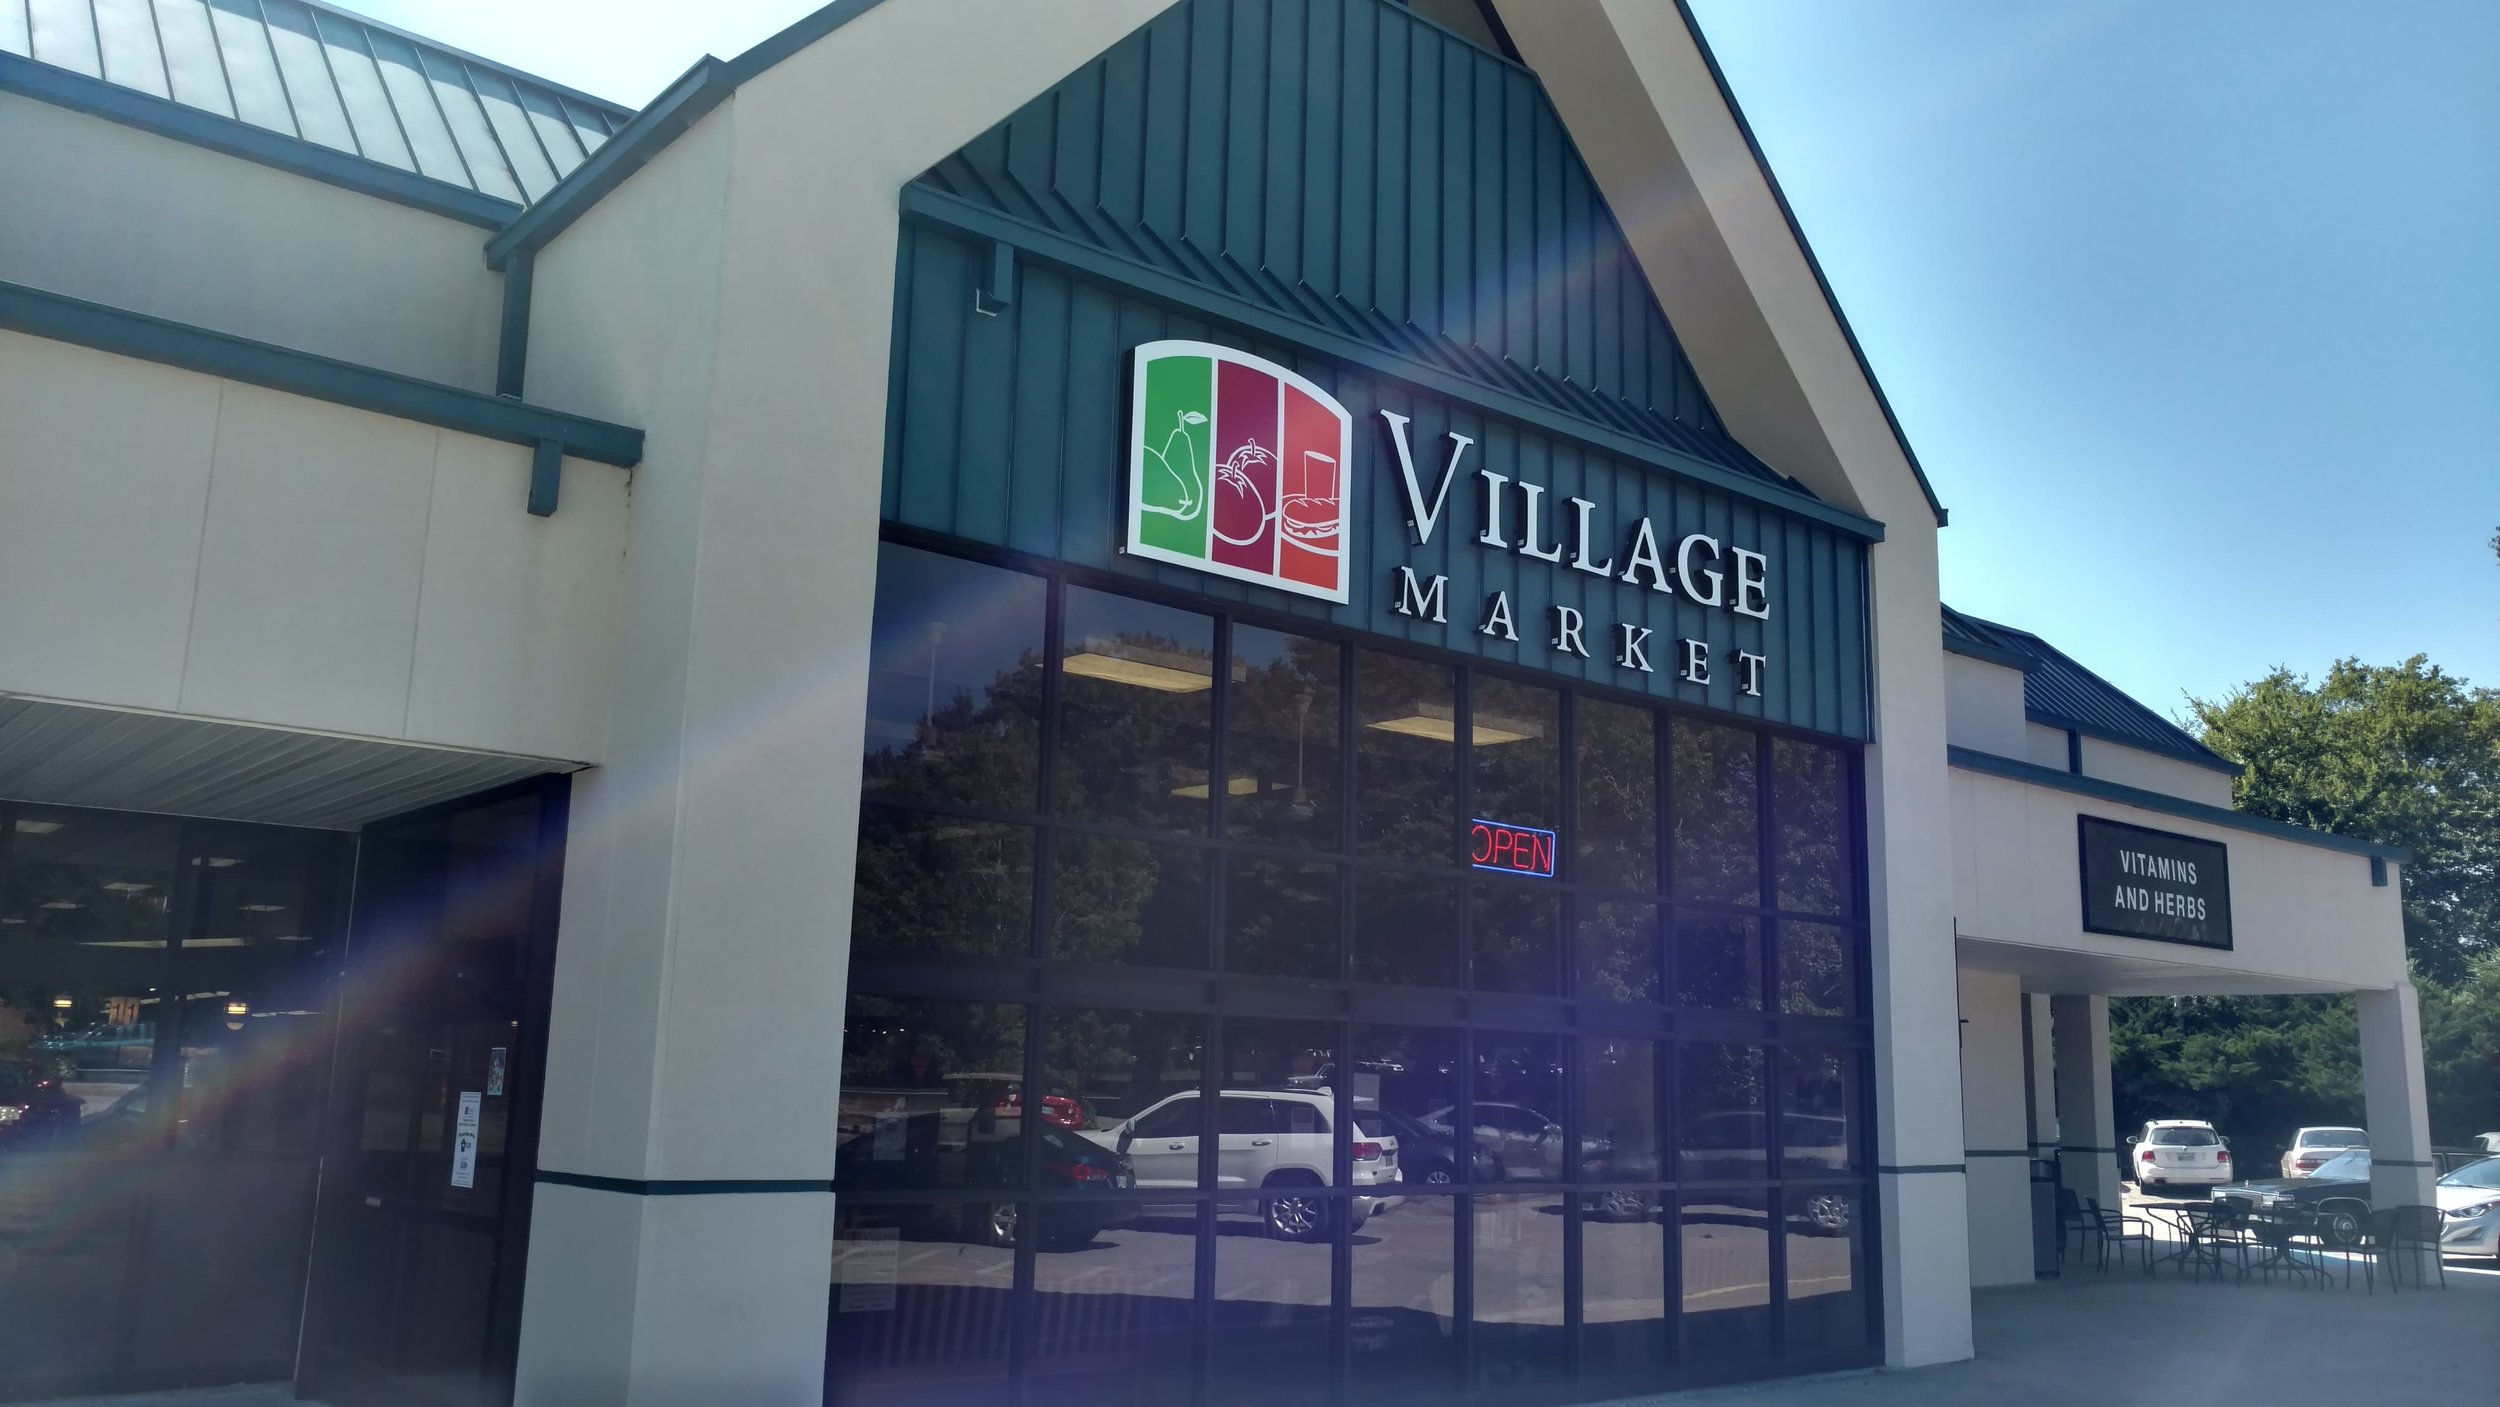 Village Market: Part of Fleming Plaza